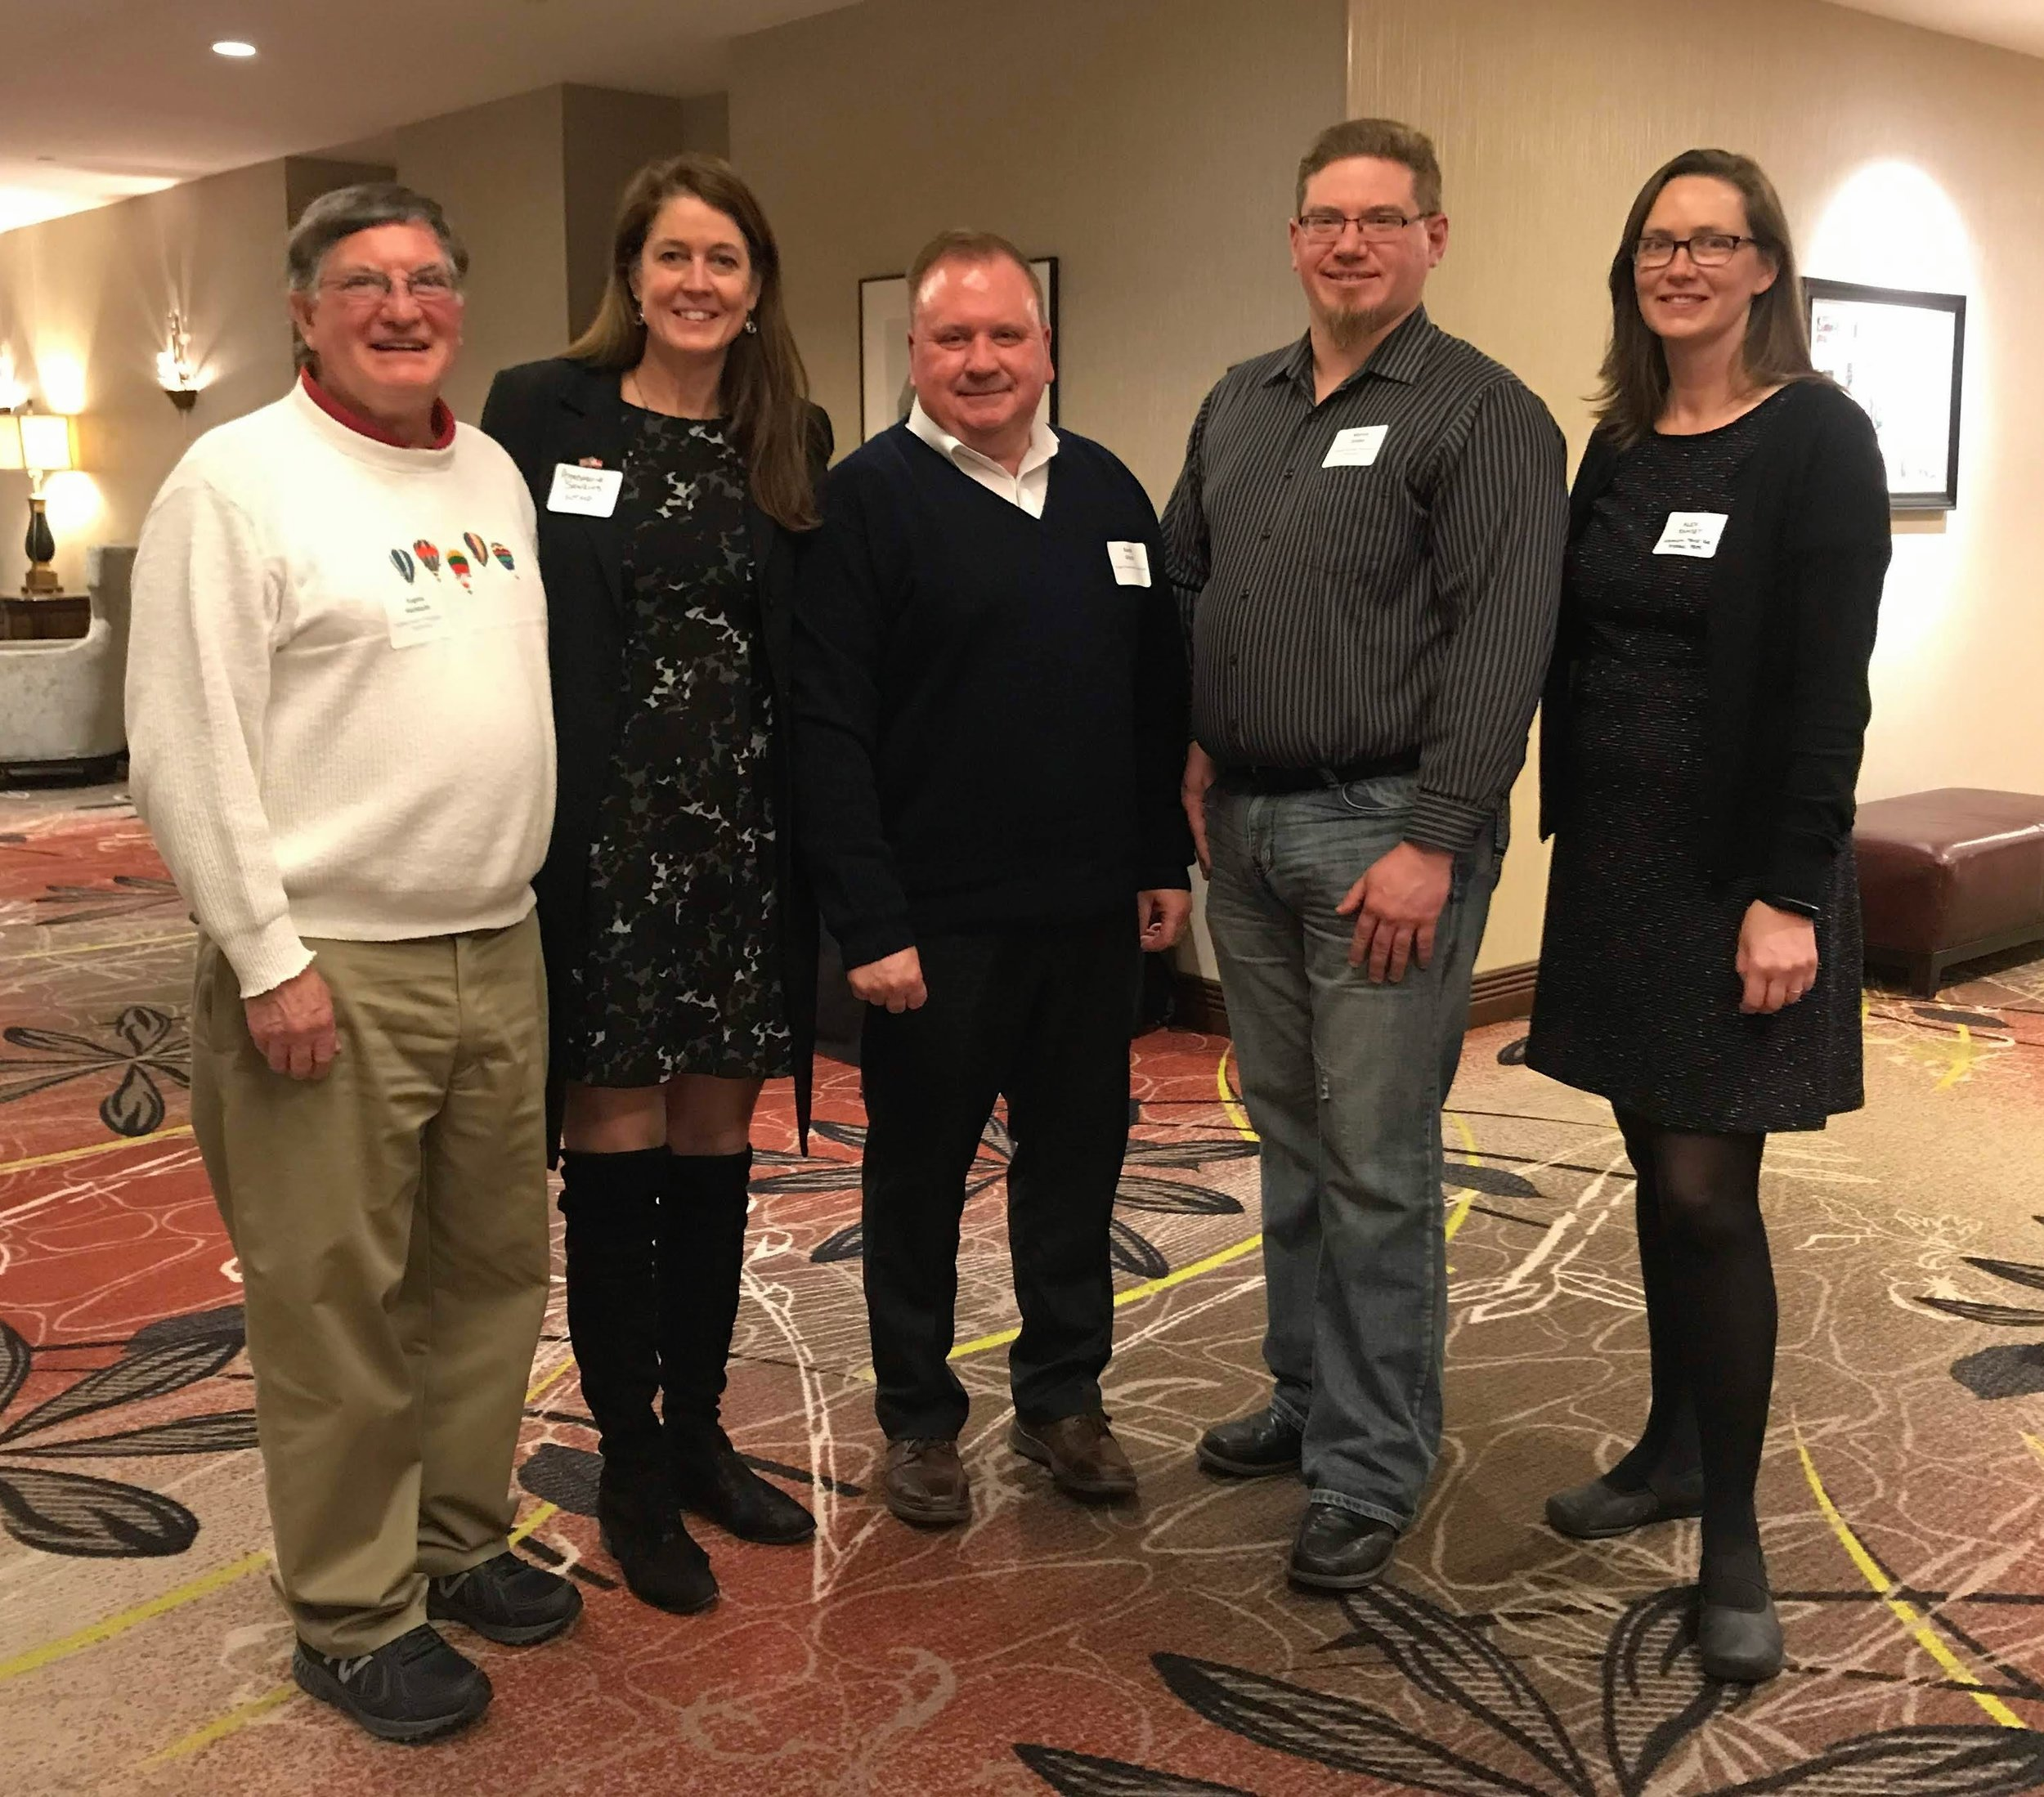 Board Members Gene Hackbarth, Annemarie Sawkins, Randy Glysch, Marcus Zettler, and Alexandra Ramsey attend the 2019 Annual WAHPC Conference in Oshkosh, WI.